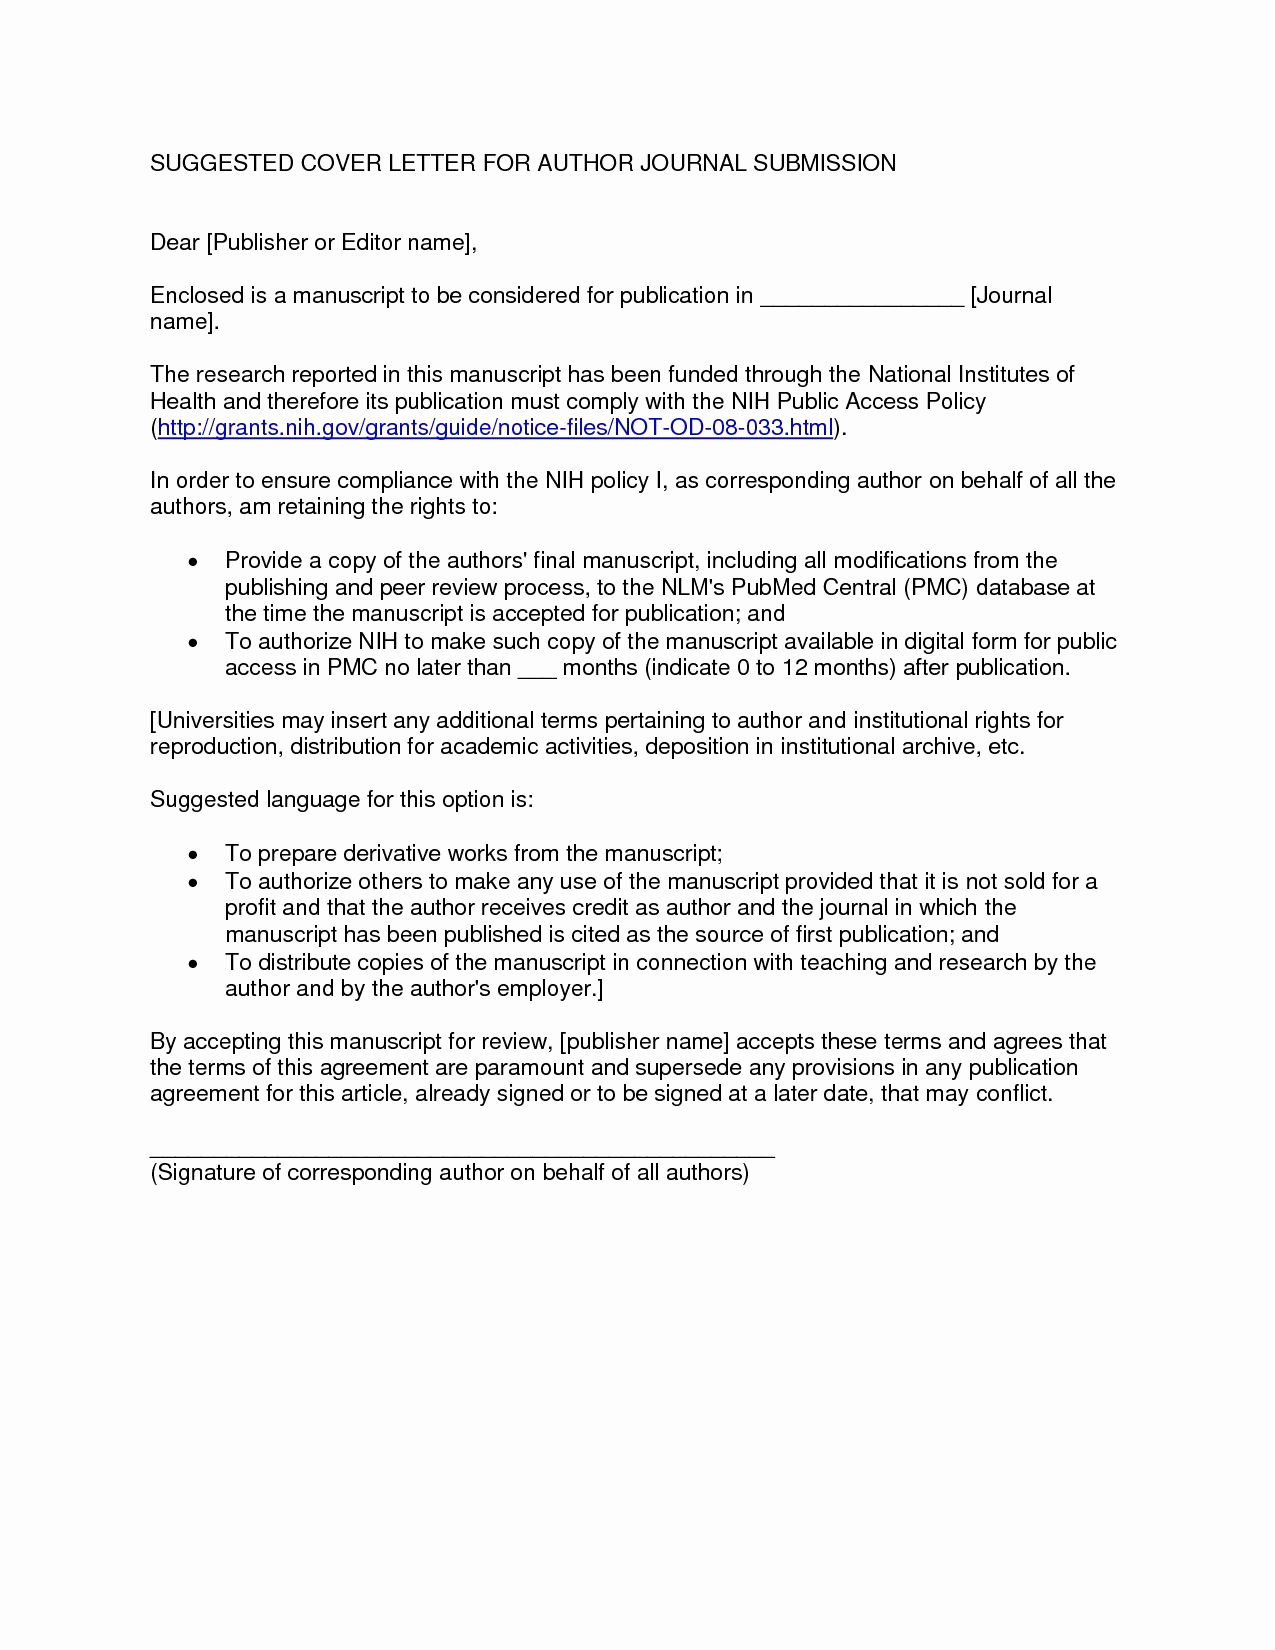 Cover Letter Template 2017 - 47 Lovely Cover Letter Template 2017